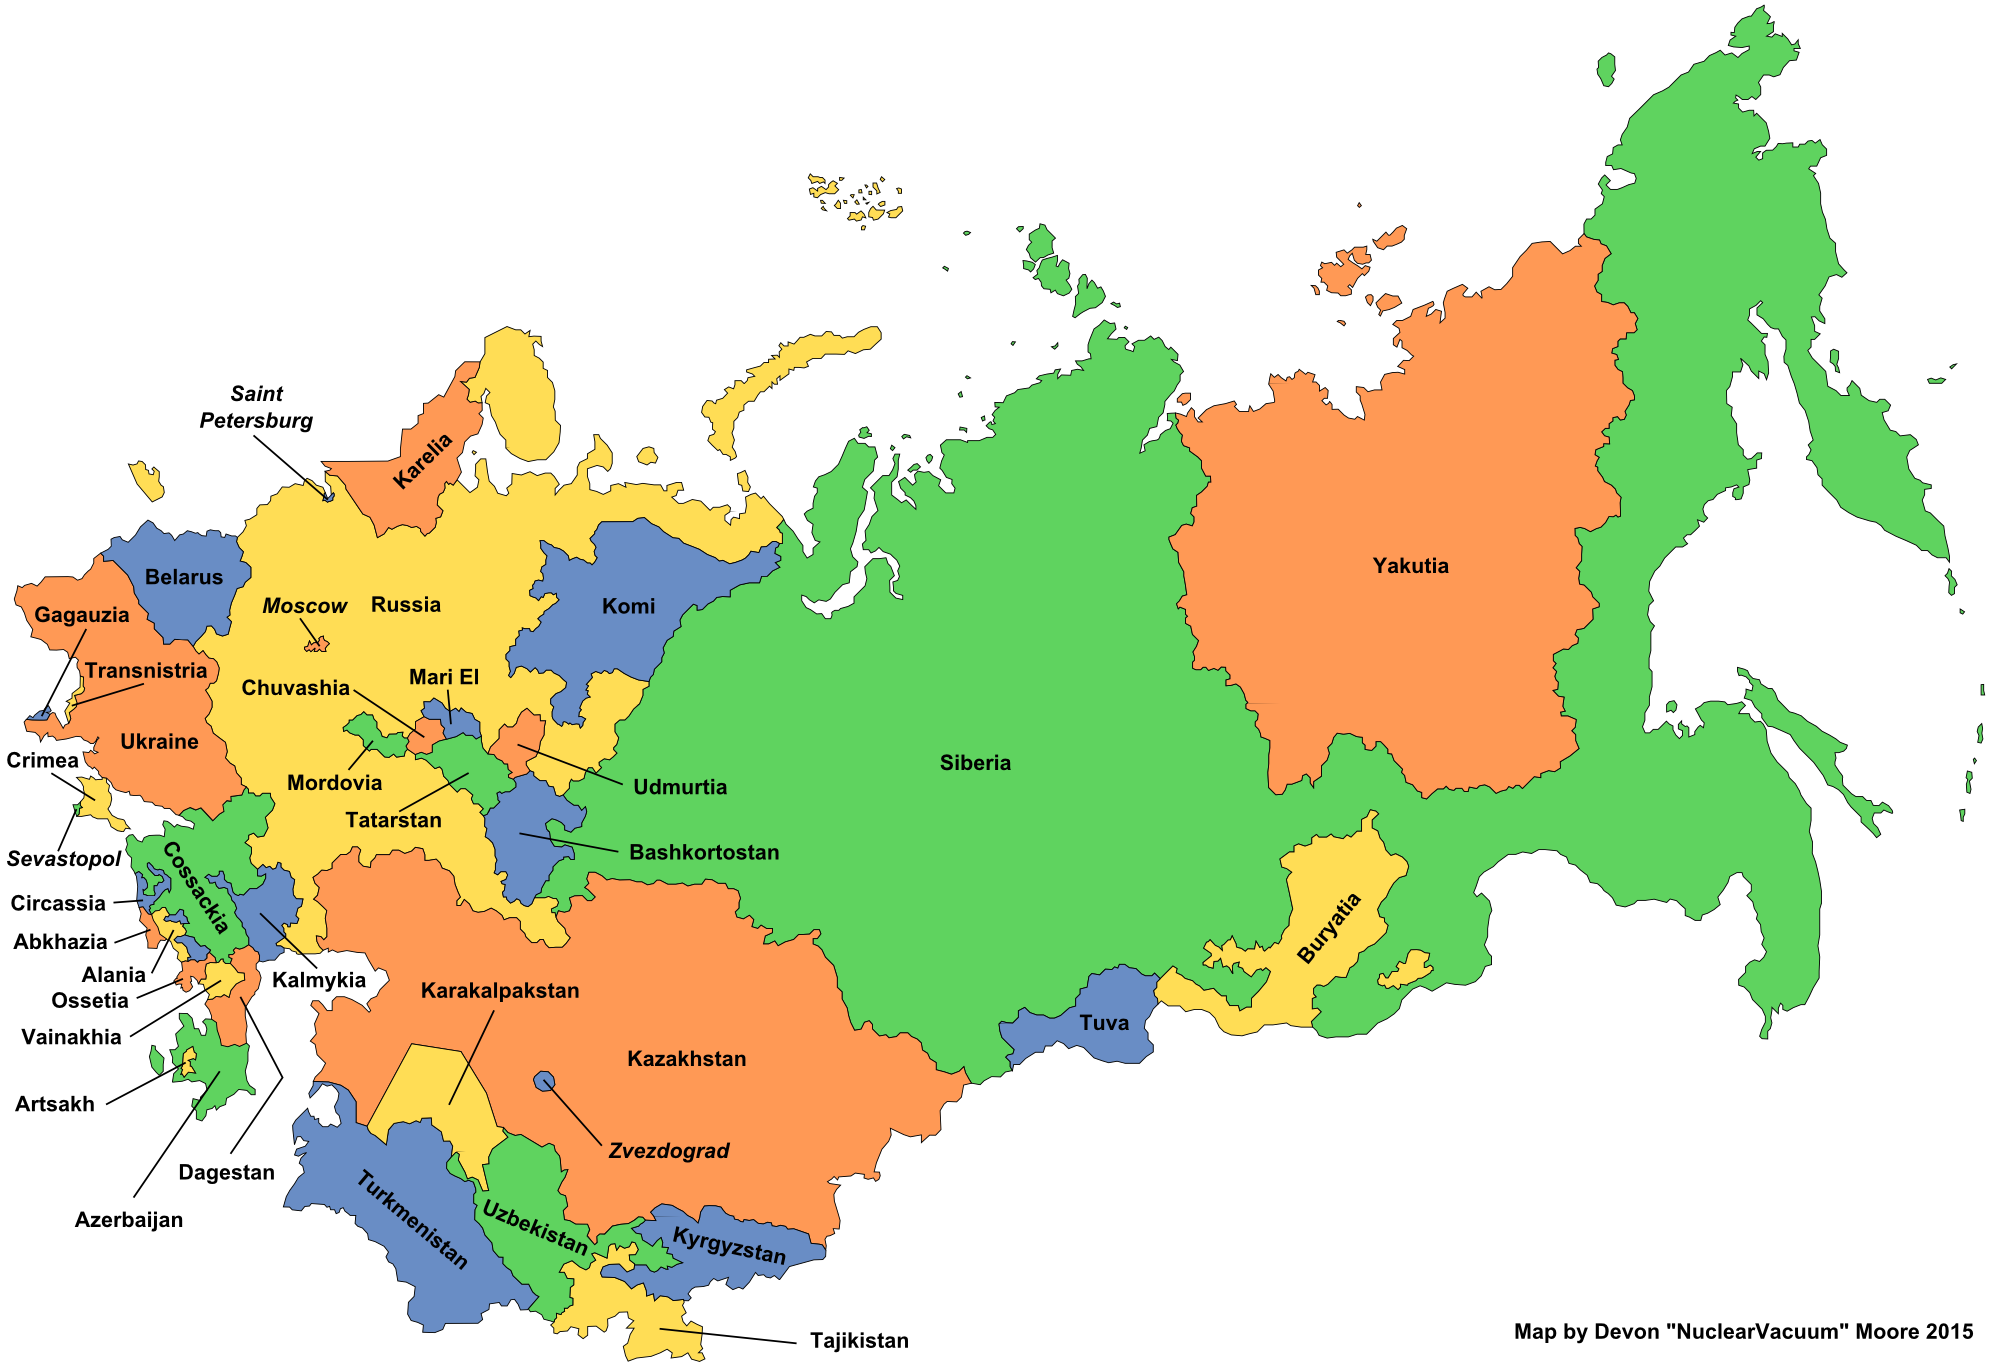 The former power of the Soviet Union